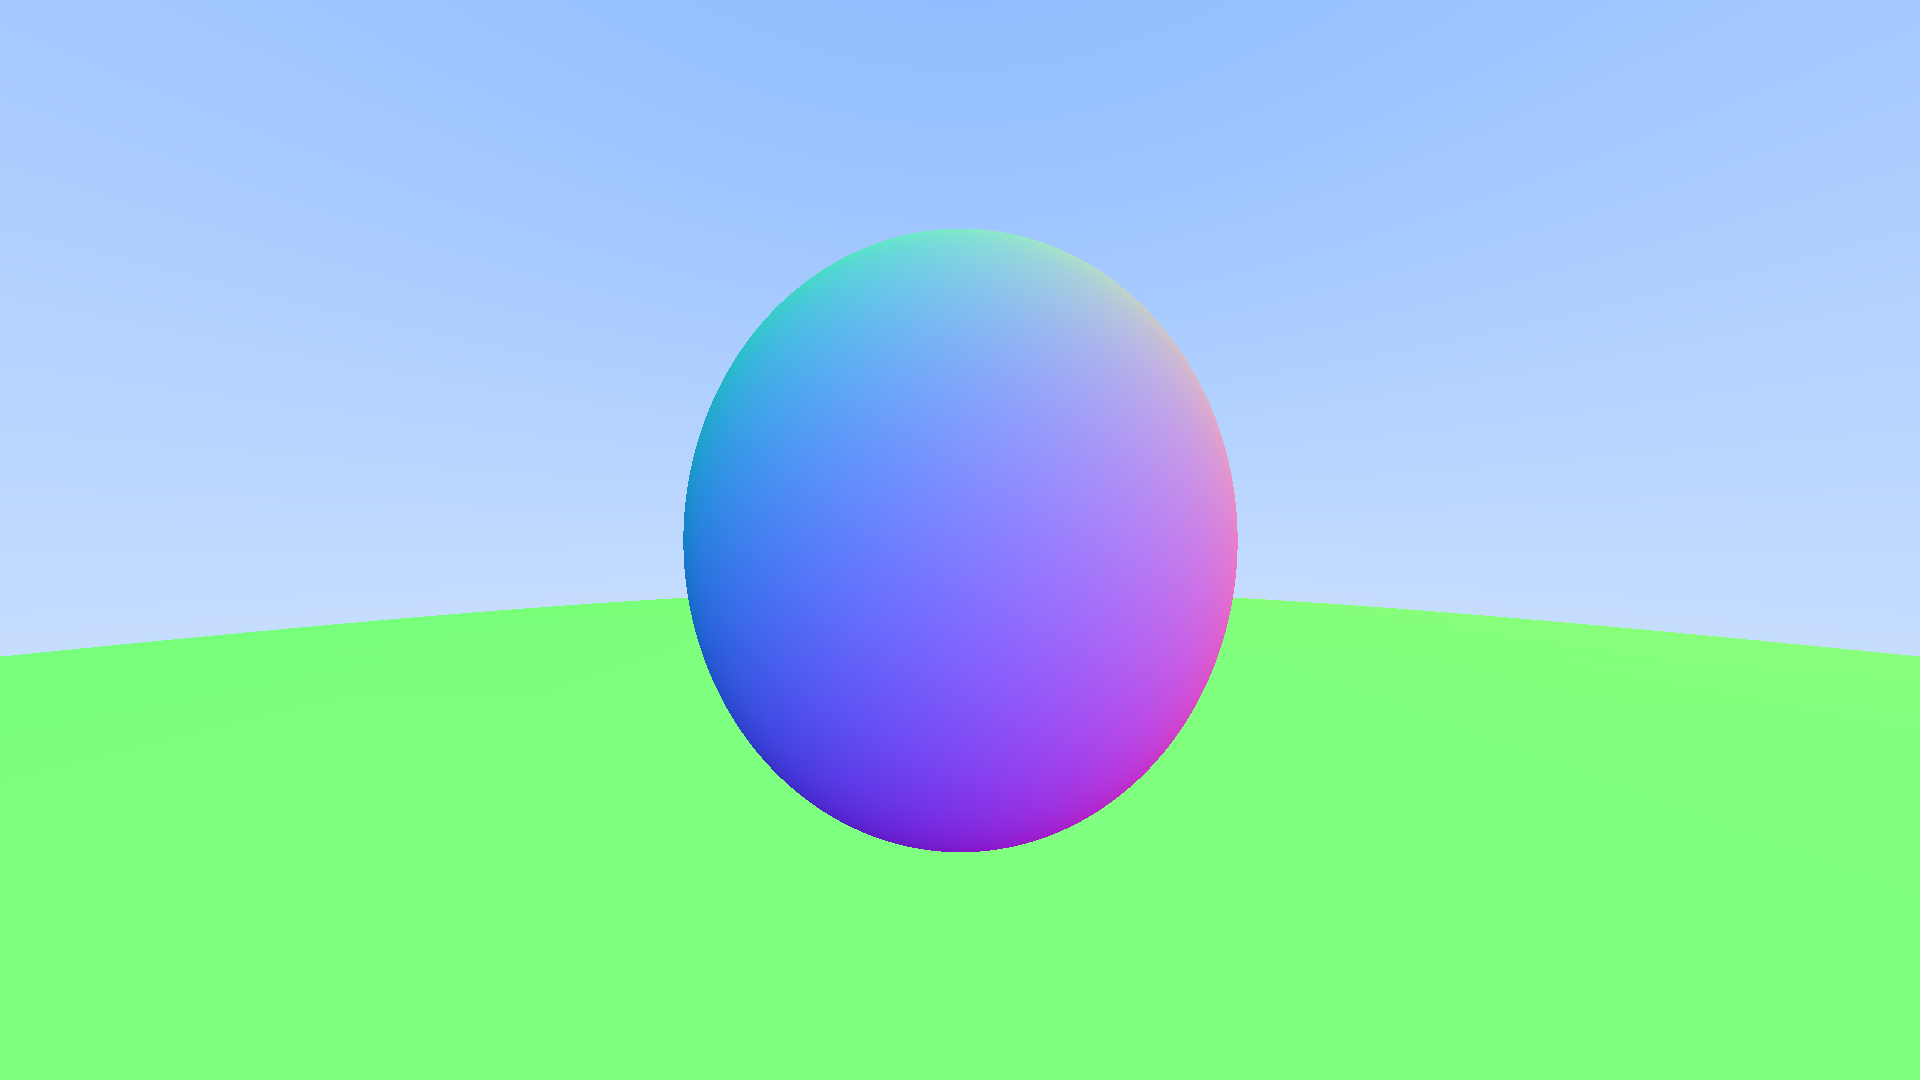 Spheres shaded by their normals with no antialiasing